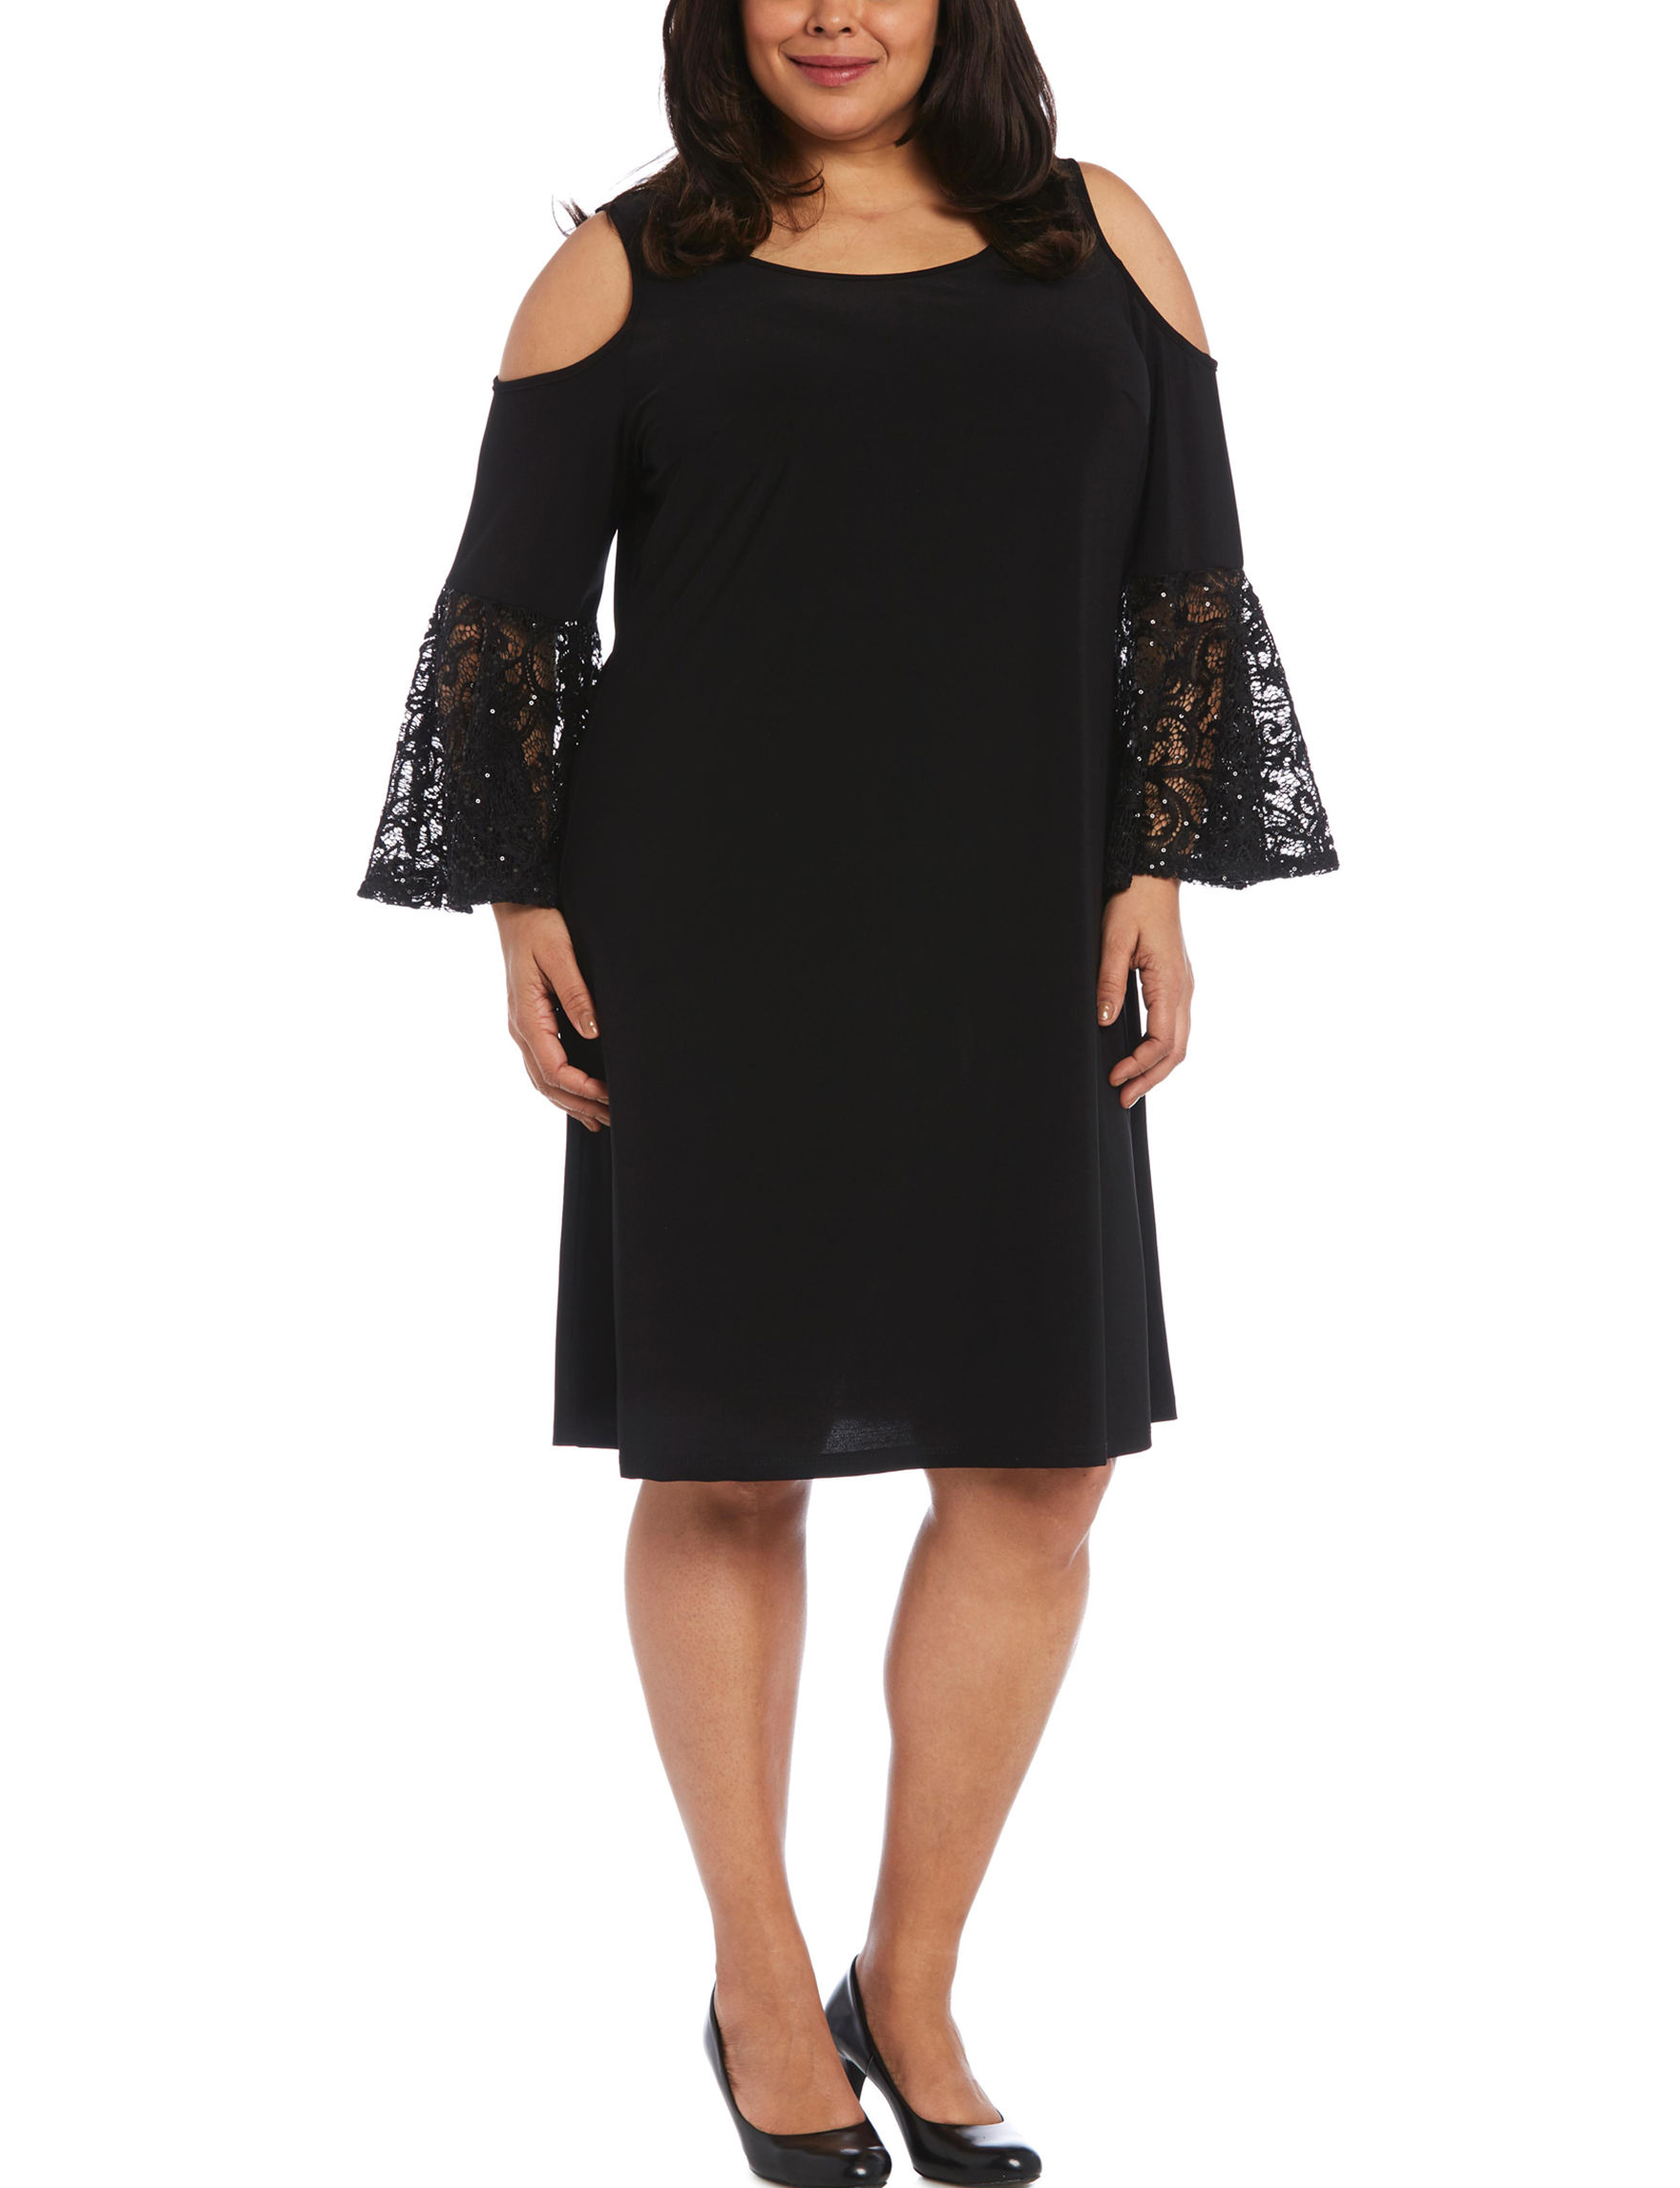 R & M Richards Black Cocktail & Party Evening & Formal A-line Dresses